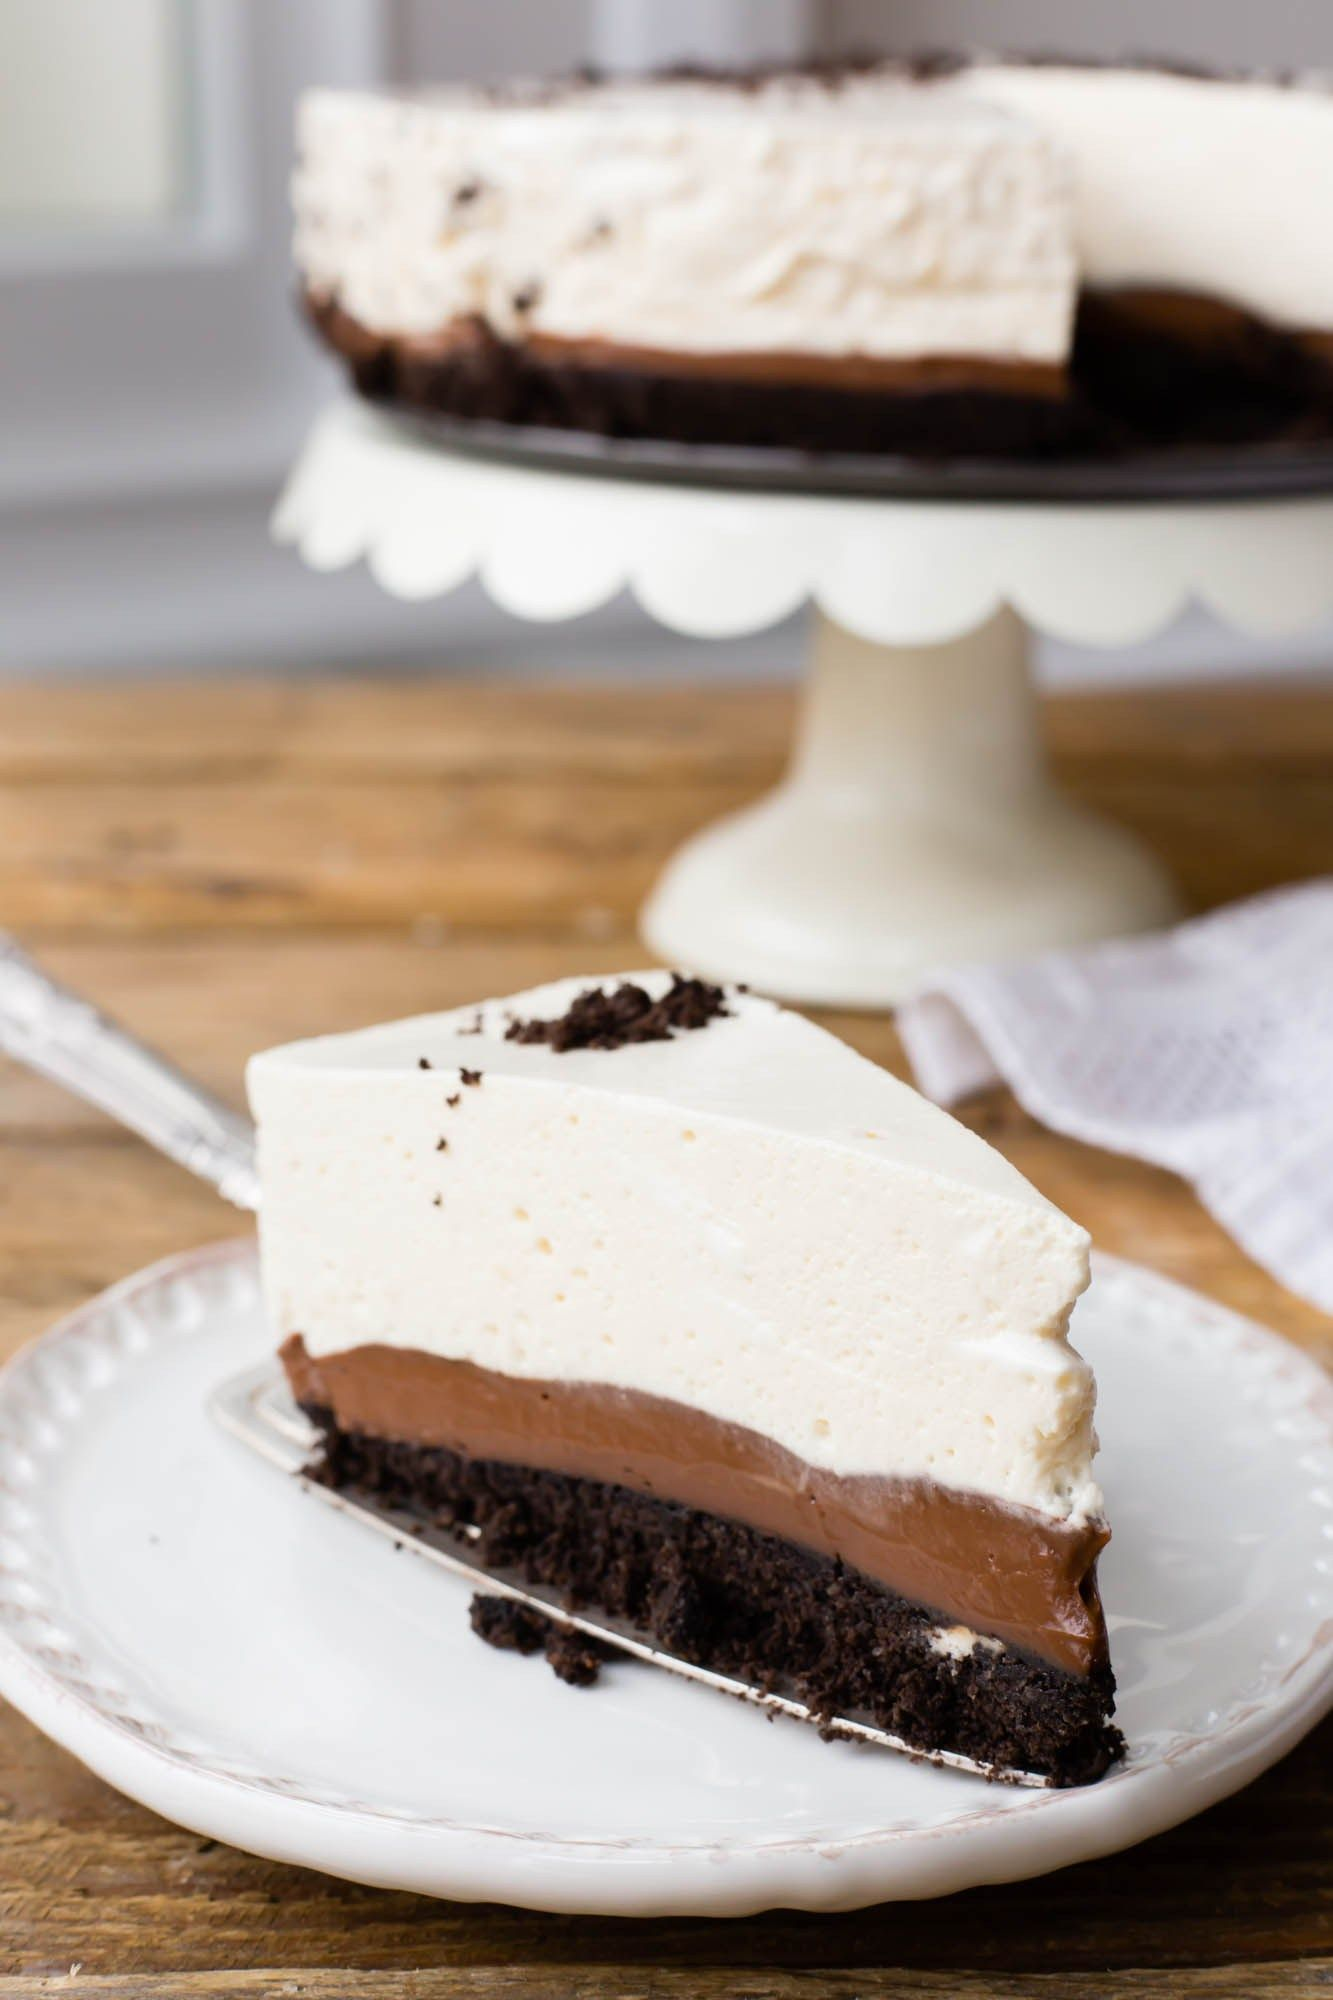 No Bake Oreo Kuchen Thermomix No Bake Oreo Pie Y U M M I E S Pinterest No Bake